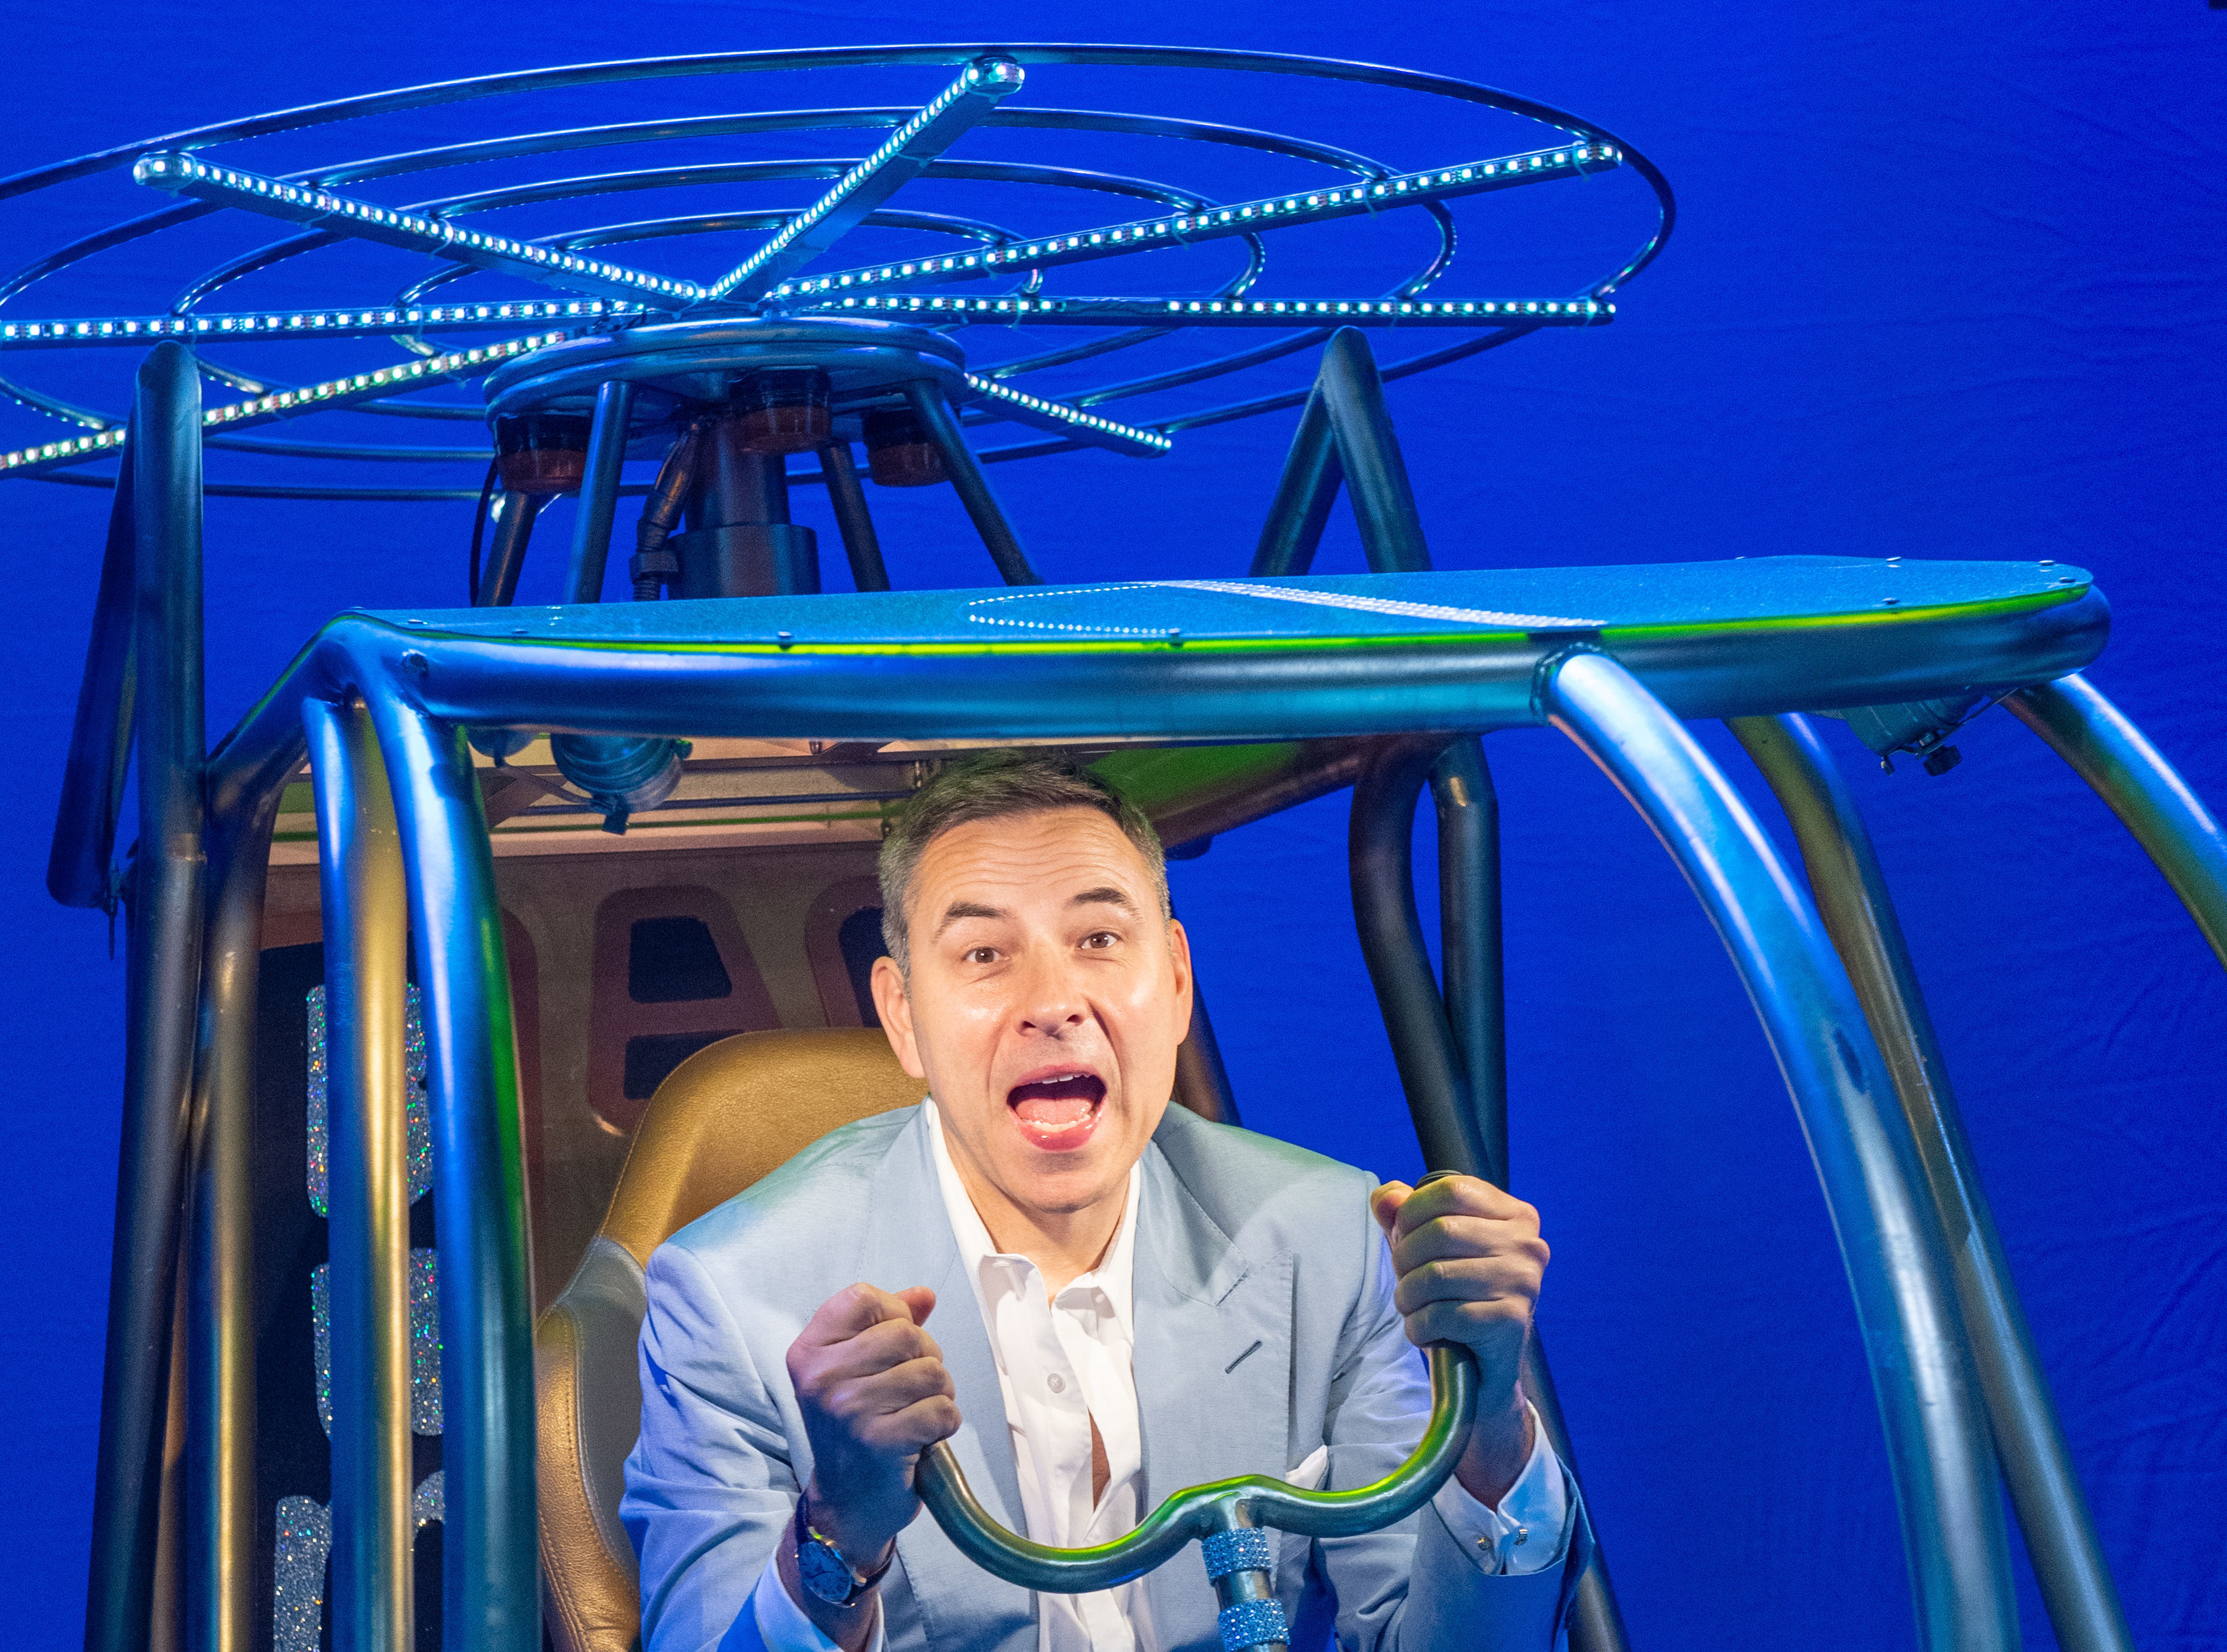 <p>David Walliams sits in a model helicopter onstage at the Garrick Theatre in London, during a visit to meet the cast of Billionaire Boy, the West End production of his best selling children's book, which opens on July 17th. Picture date: Friday July 16, 2021.</p>